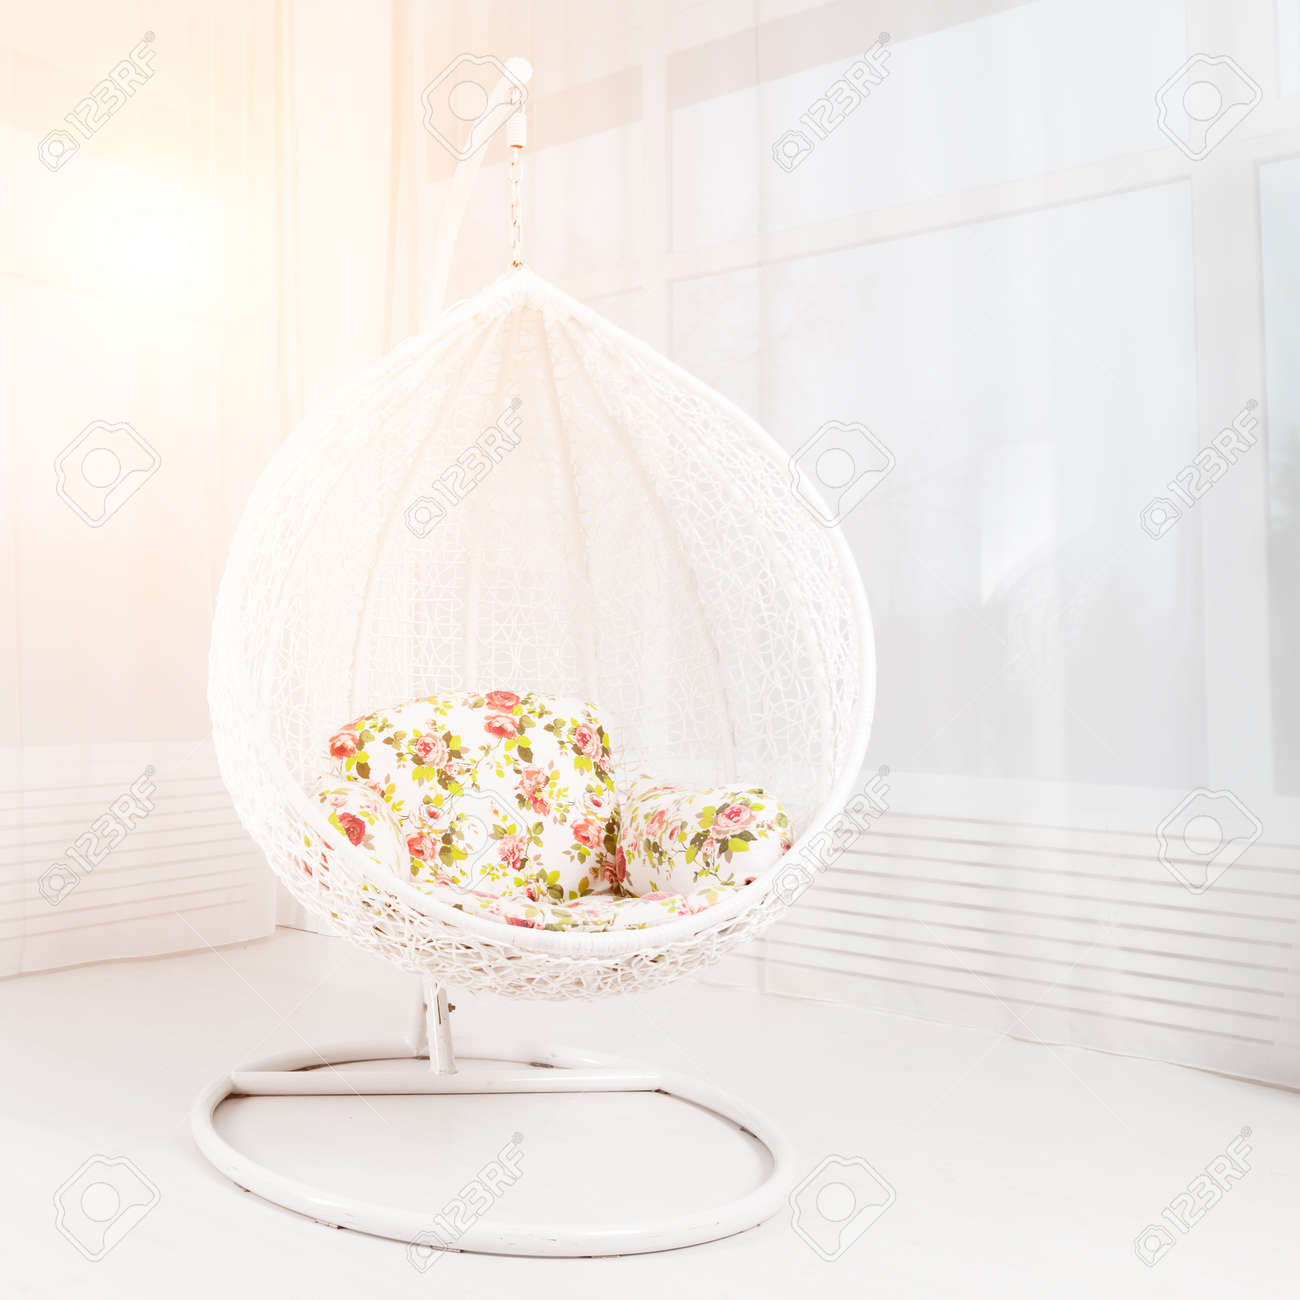 Image of: White Round Chair With Flowers In A Light Large Living Room Stock Photo Picture And Royalty Free Image Image 104893928